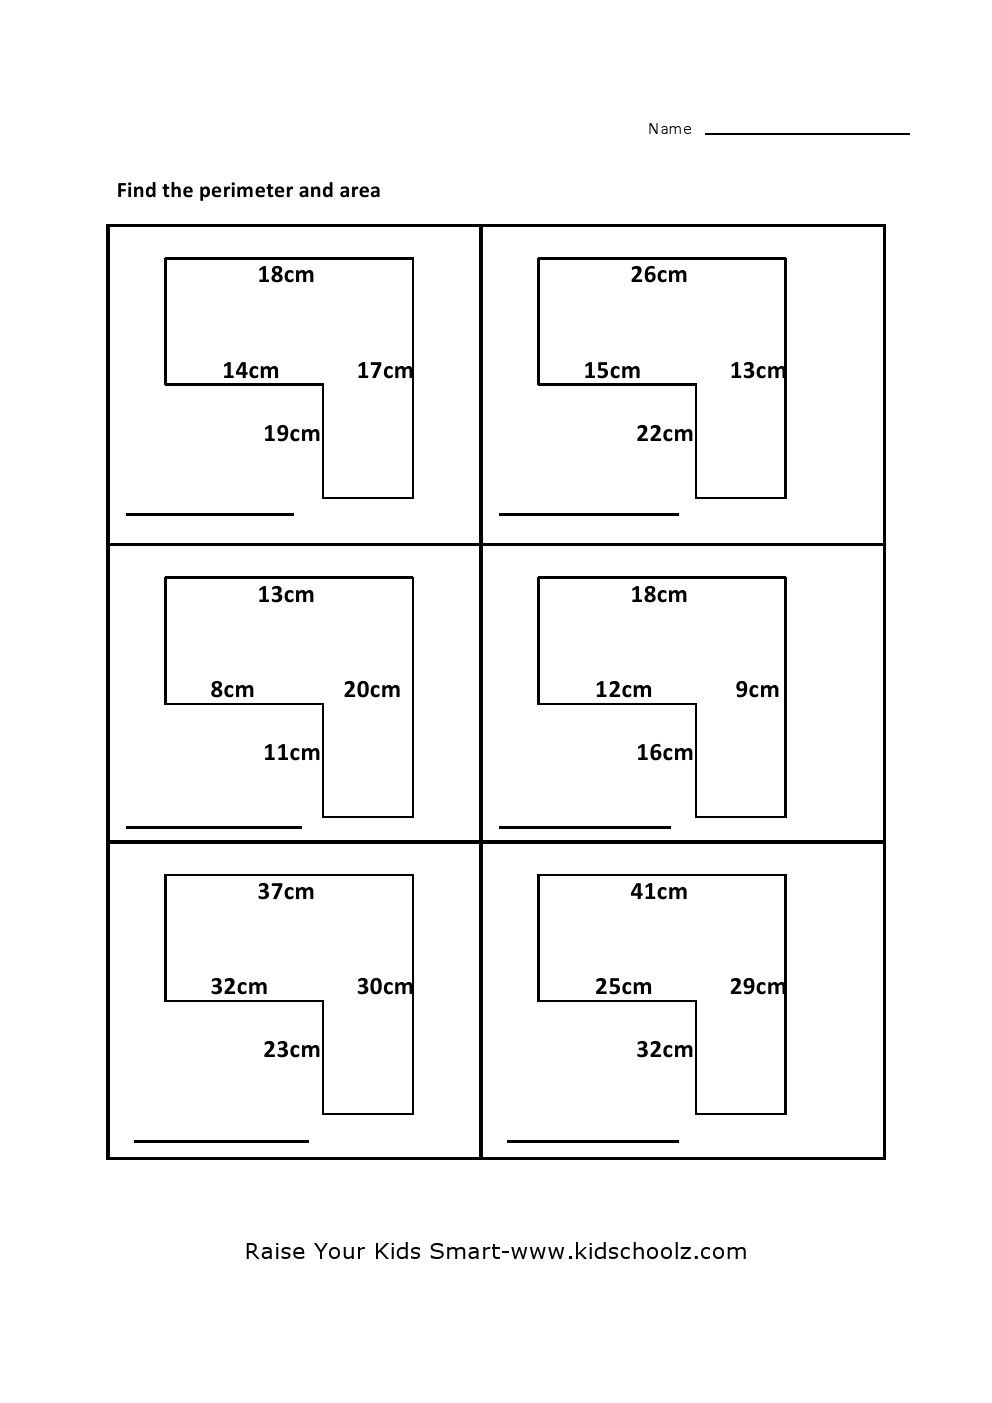 and-area-worksheets-grade-5-scalien-math-perimeter-permiter-lsh-4 ...